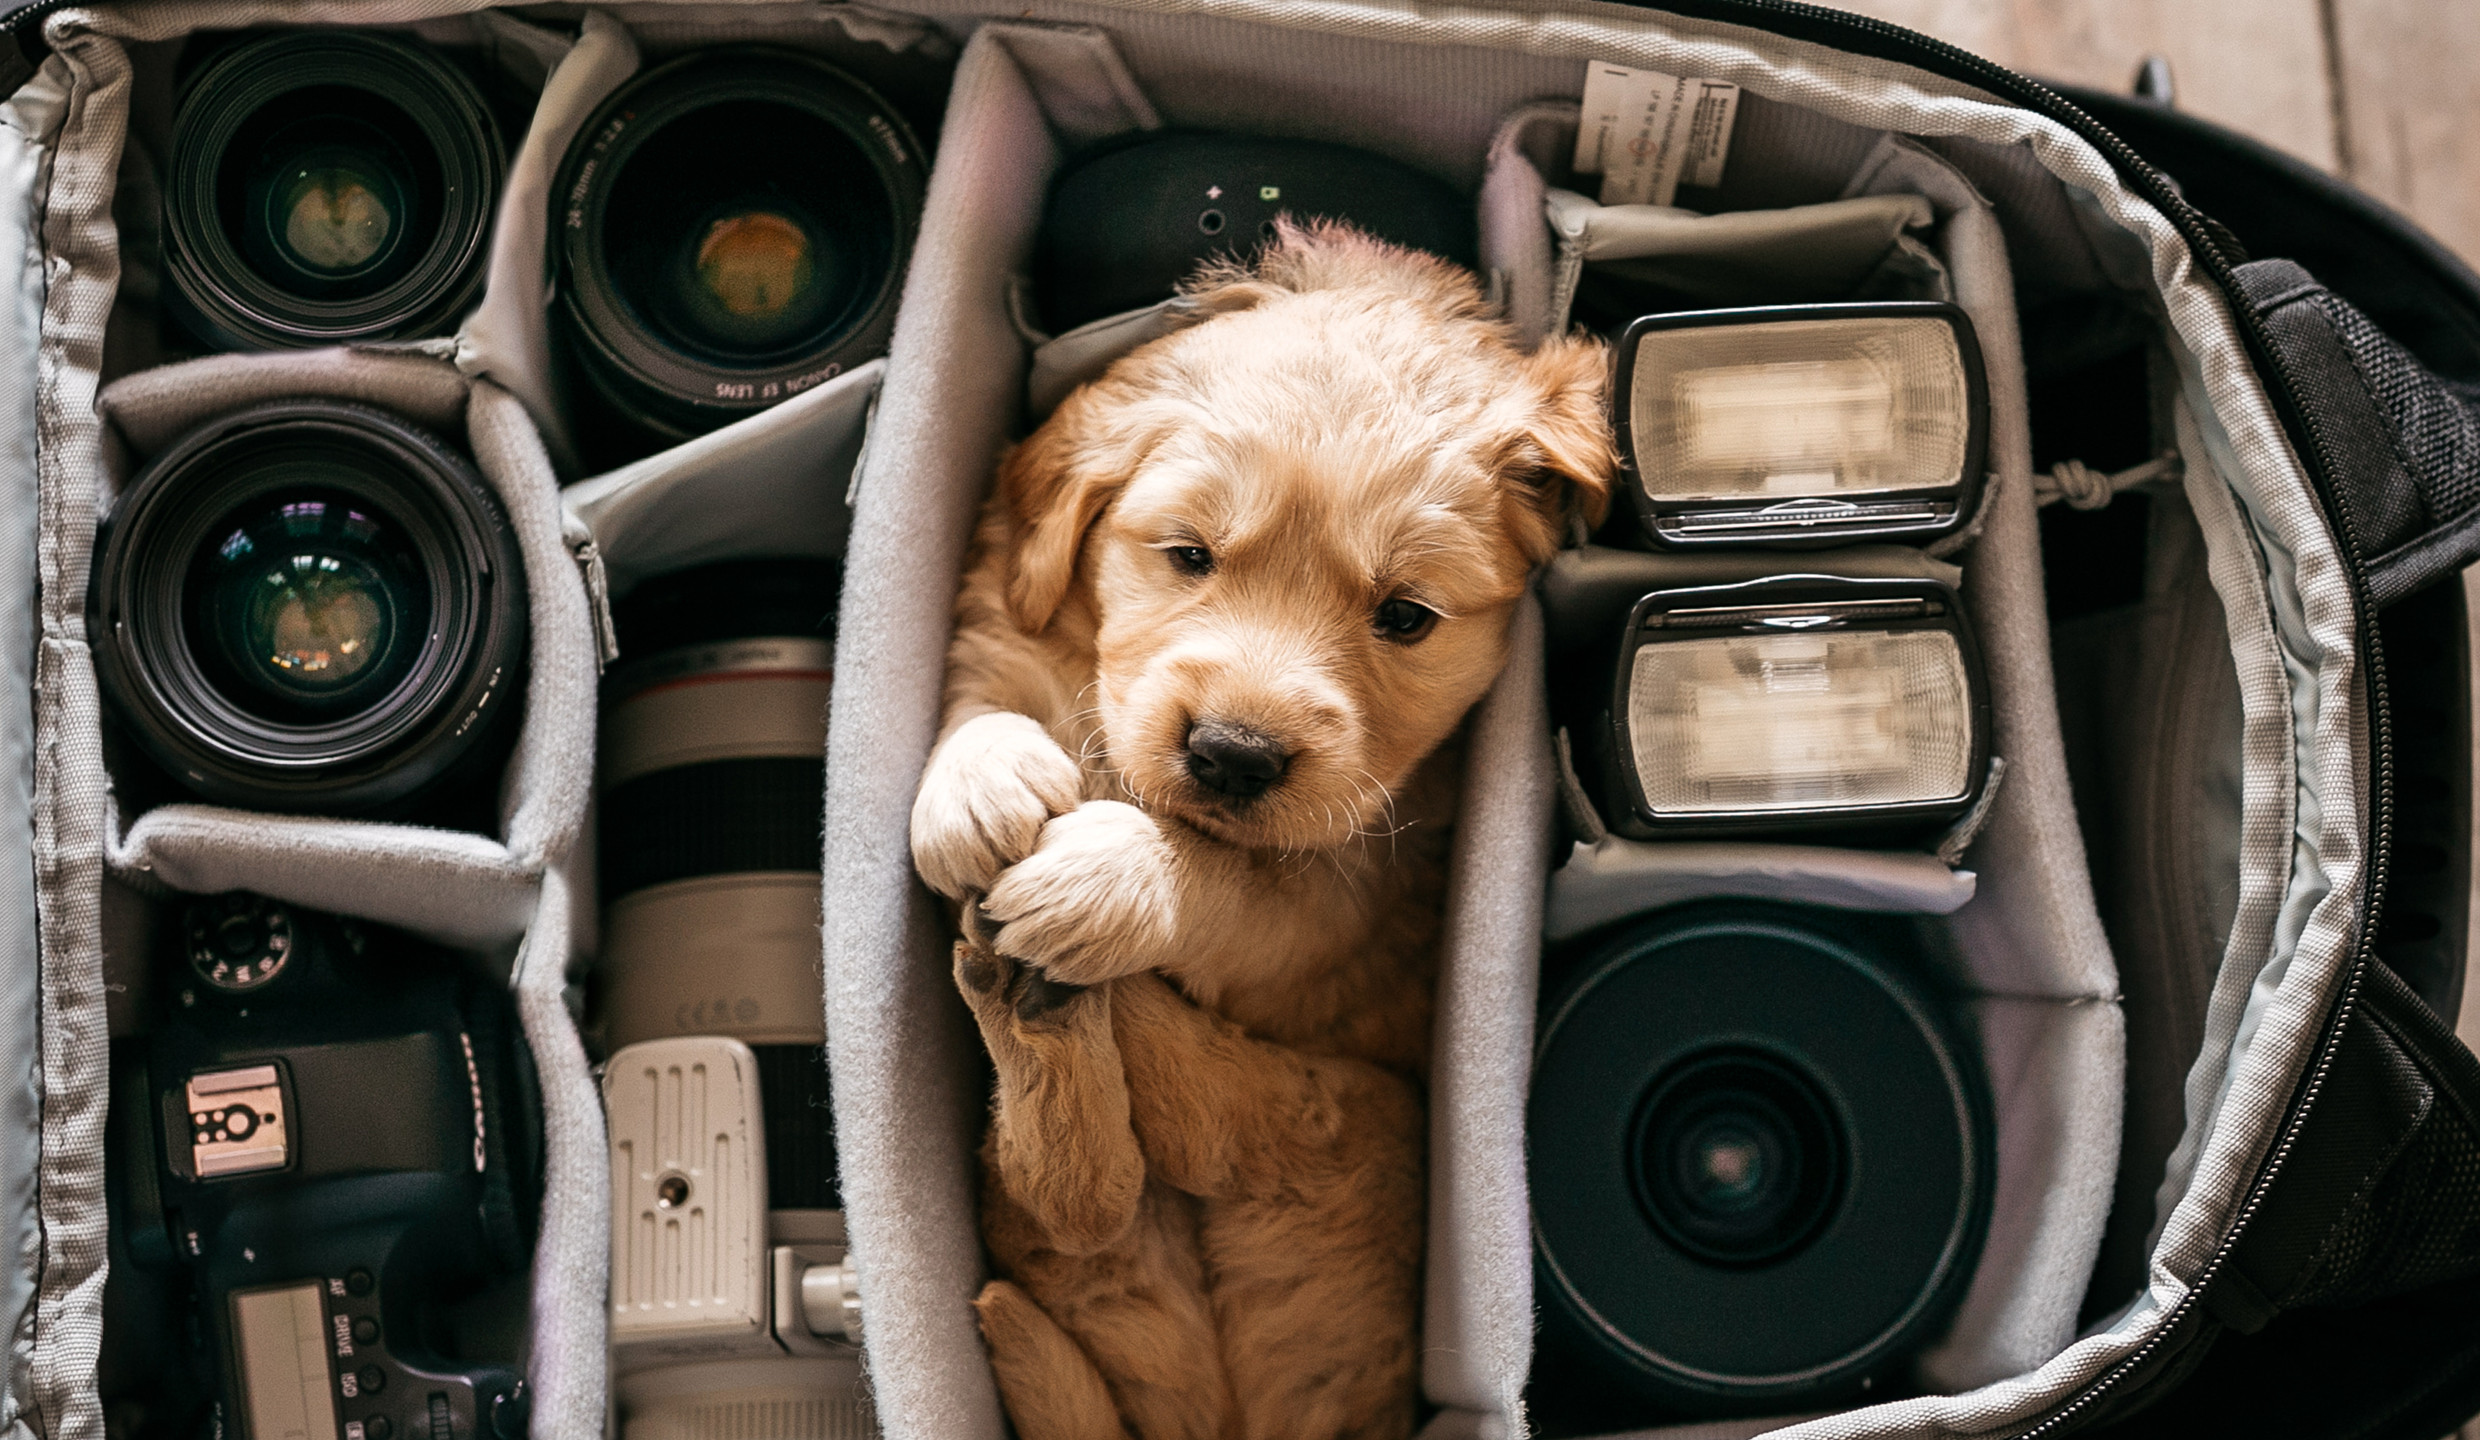 When I got my new puppy Moses, I knew I wanted to incorporate him into a picture with some camera gear. I have always enjoyed pictures of equipment organized neatly, so I thought it would be fun to place him in the midst of the gear while he was almost as small as a lens.   Shot on: Canon EOS 5D Mark IV and Canon EF 35mm f/1.4L II USM lens